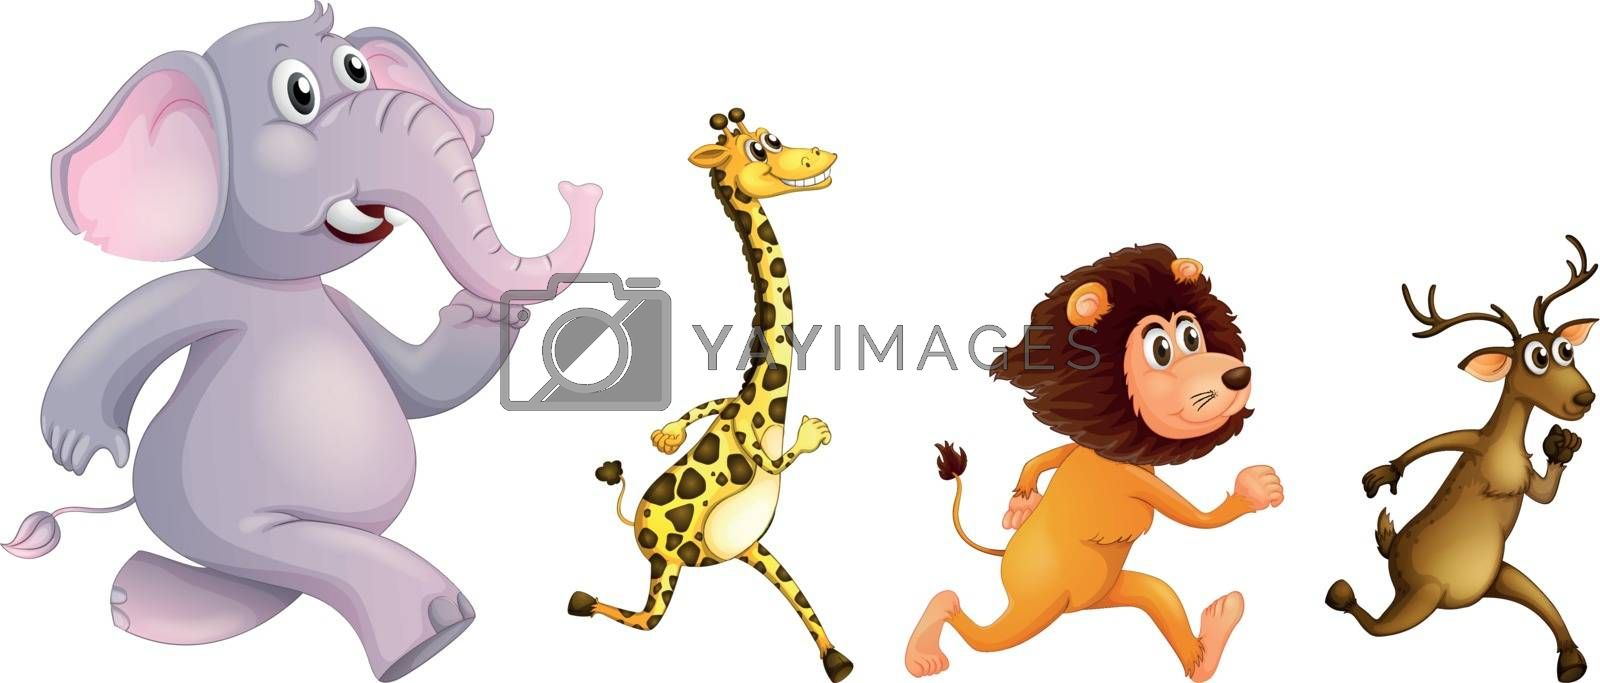 Illustration of the four wild animals running on a white background